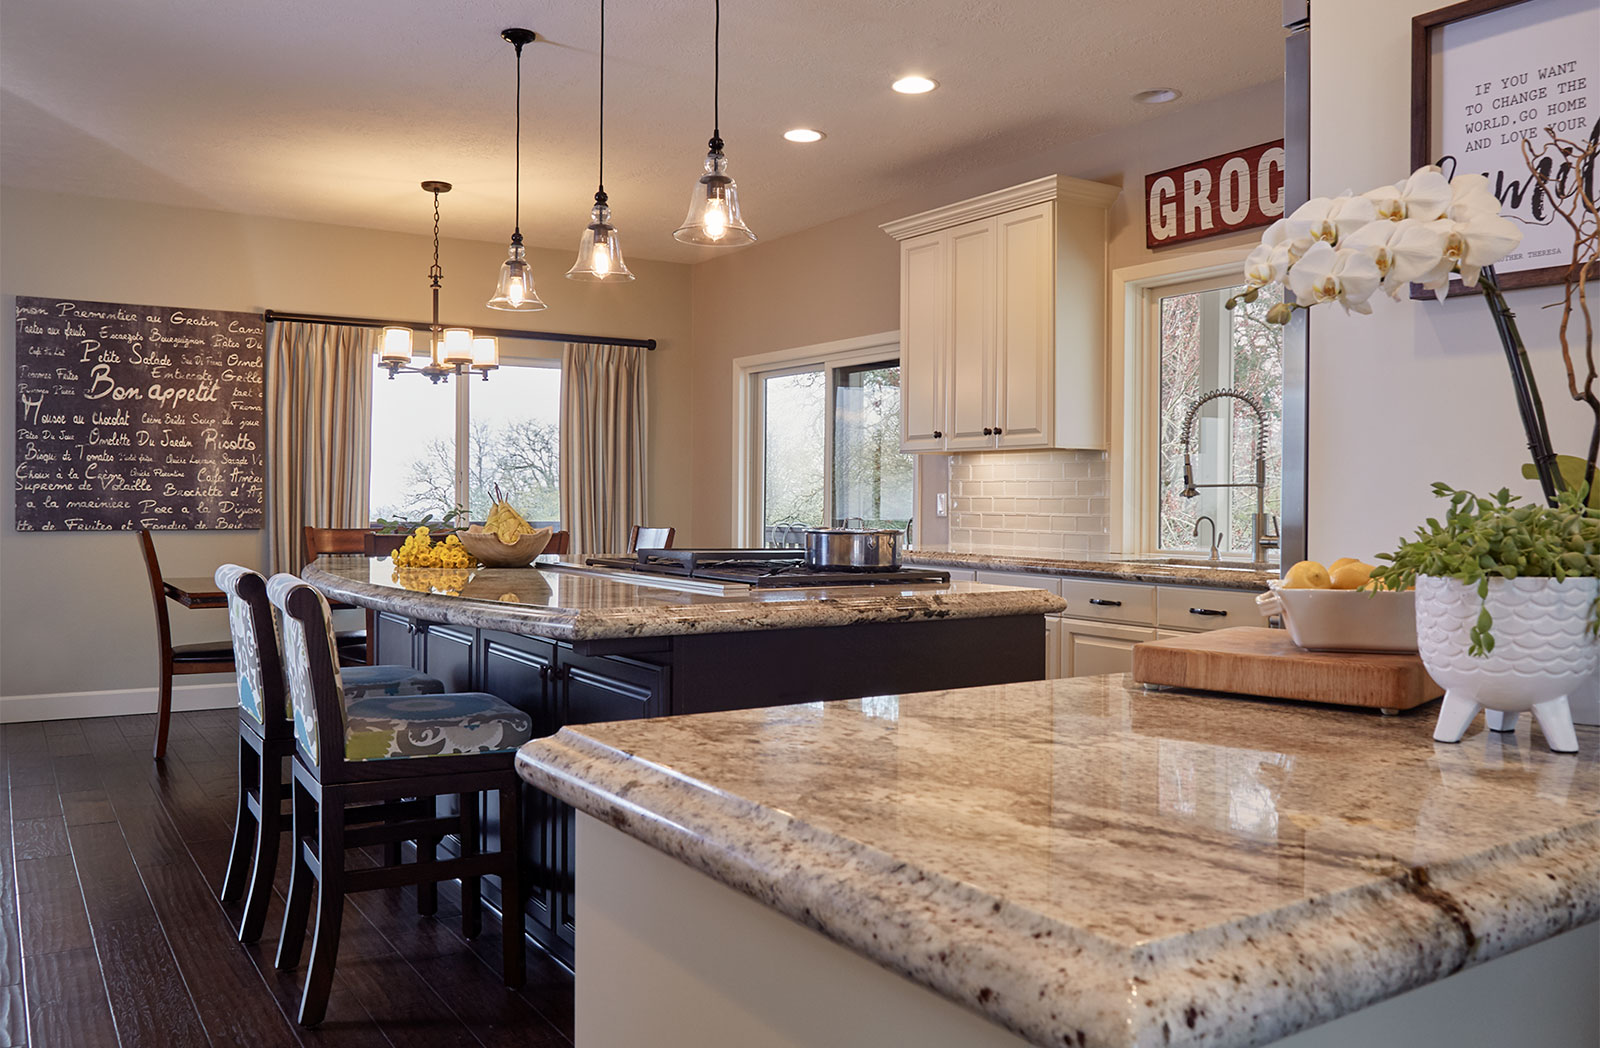 Large island feature in this kitchen design and remodel by interior designer Becky Olsen, Rebecca Olsen Designs, Oregon